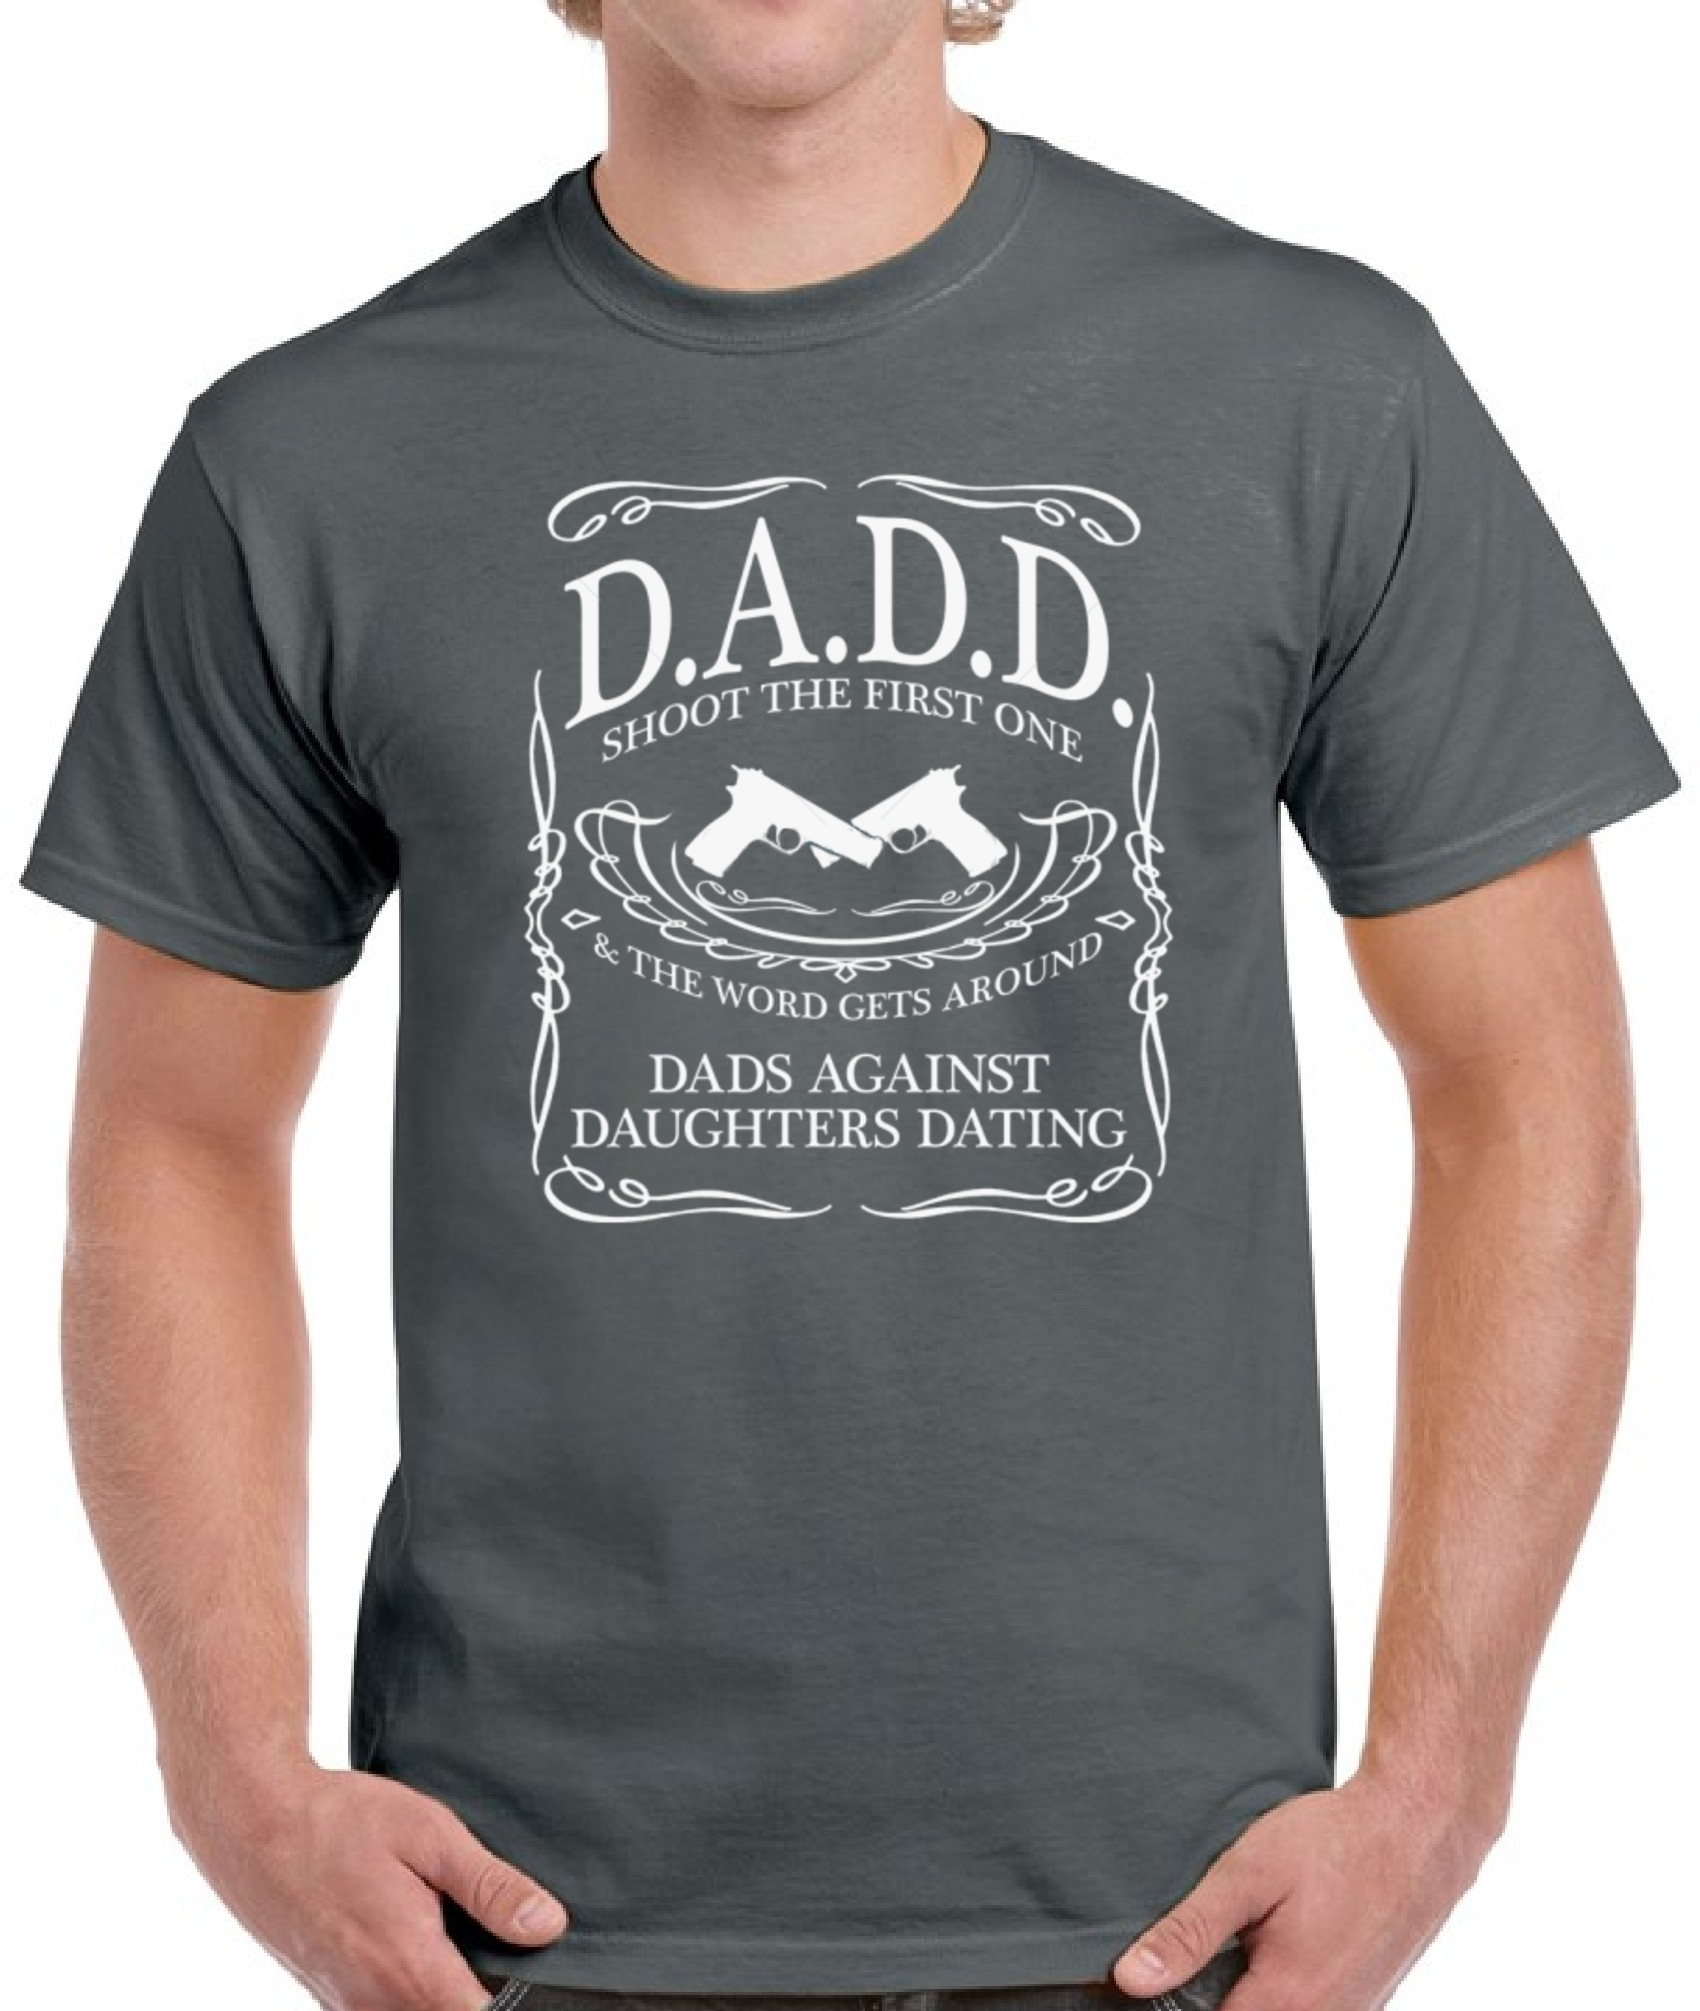 dads against daughters dating shirt